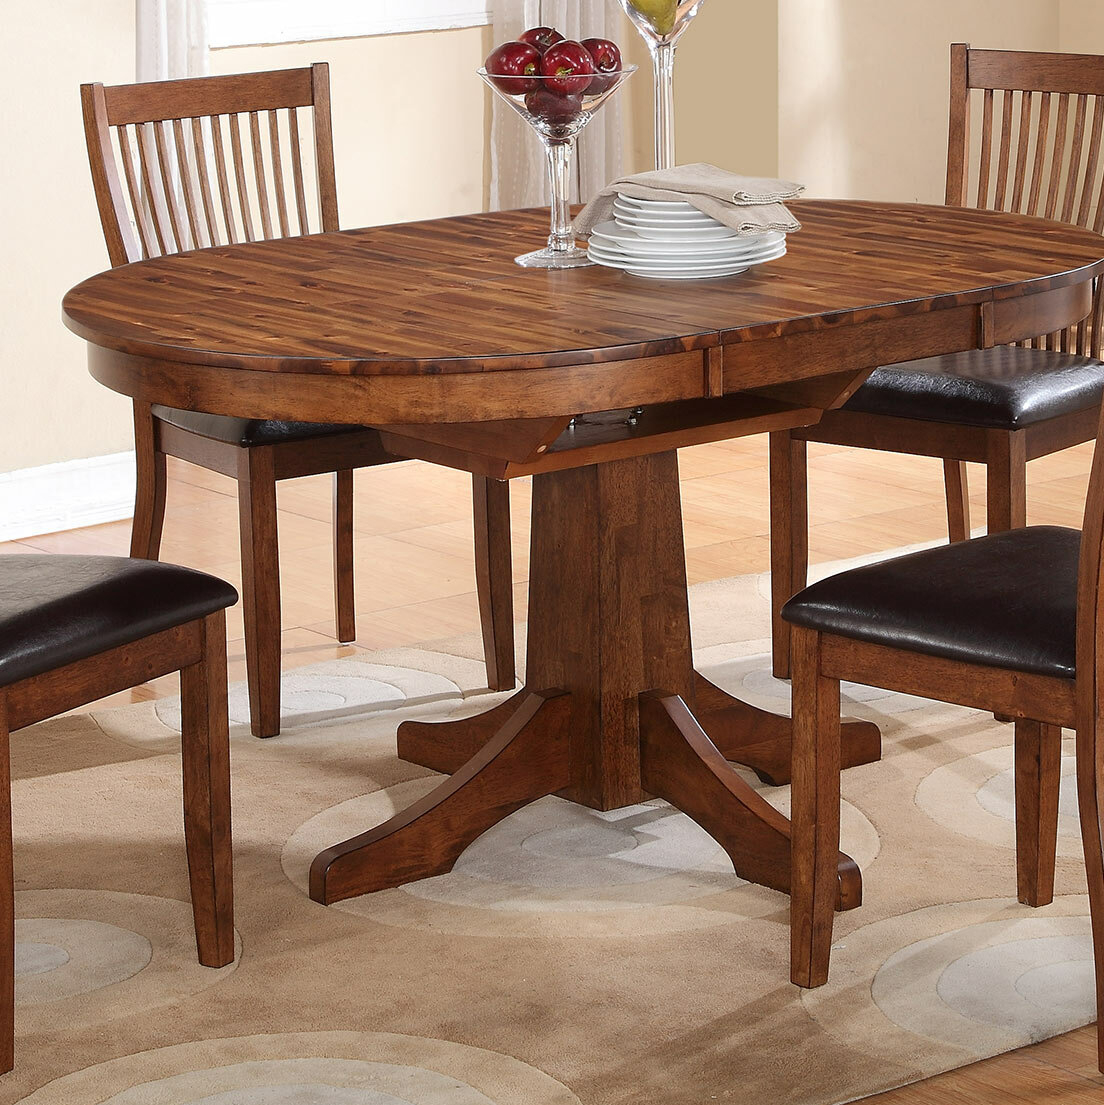 round dining table with leaf extension ideas on foter rh foter com dining room tables with 2 leaves dining room table with leaves plans